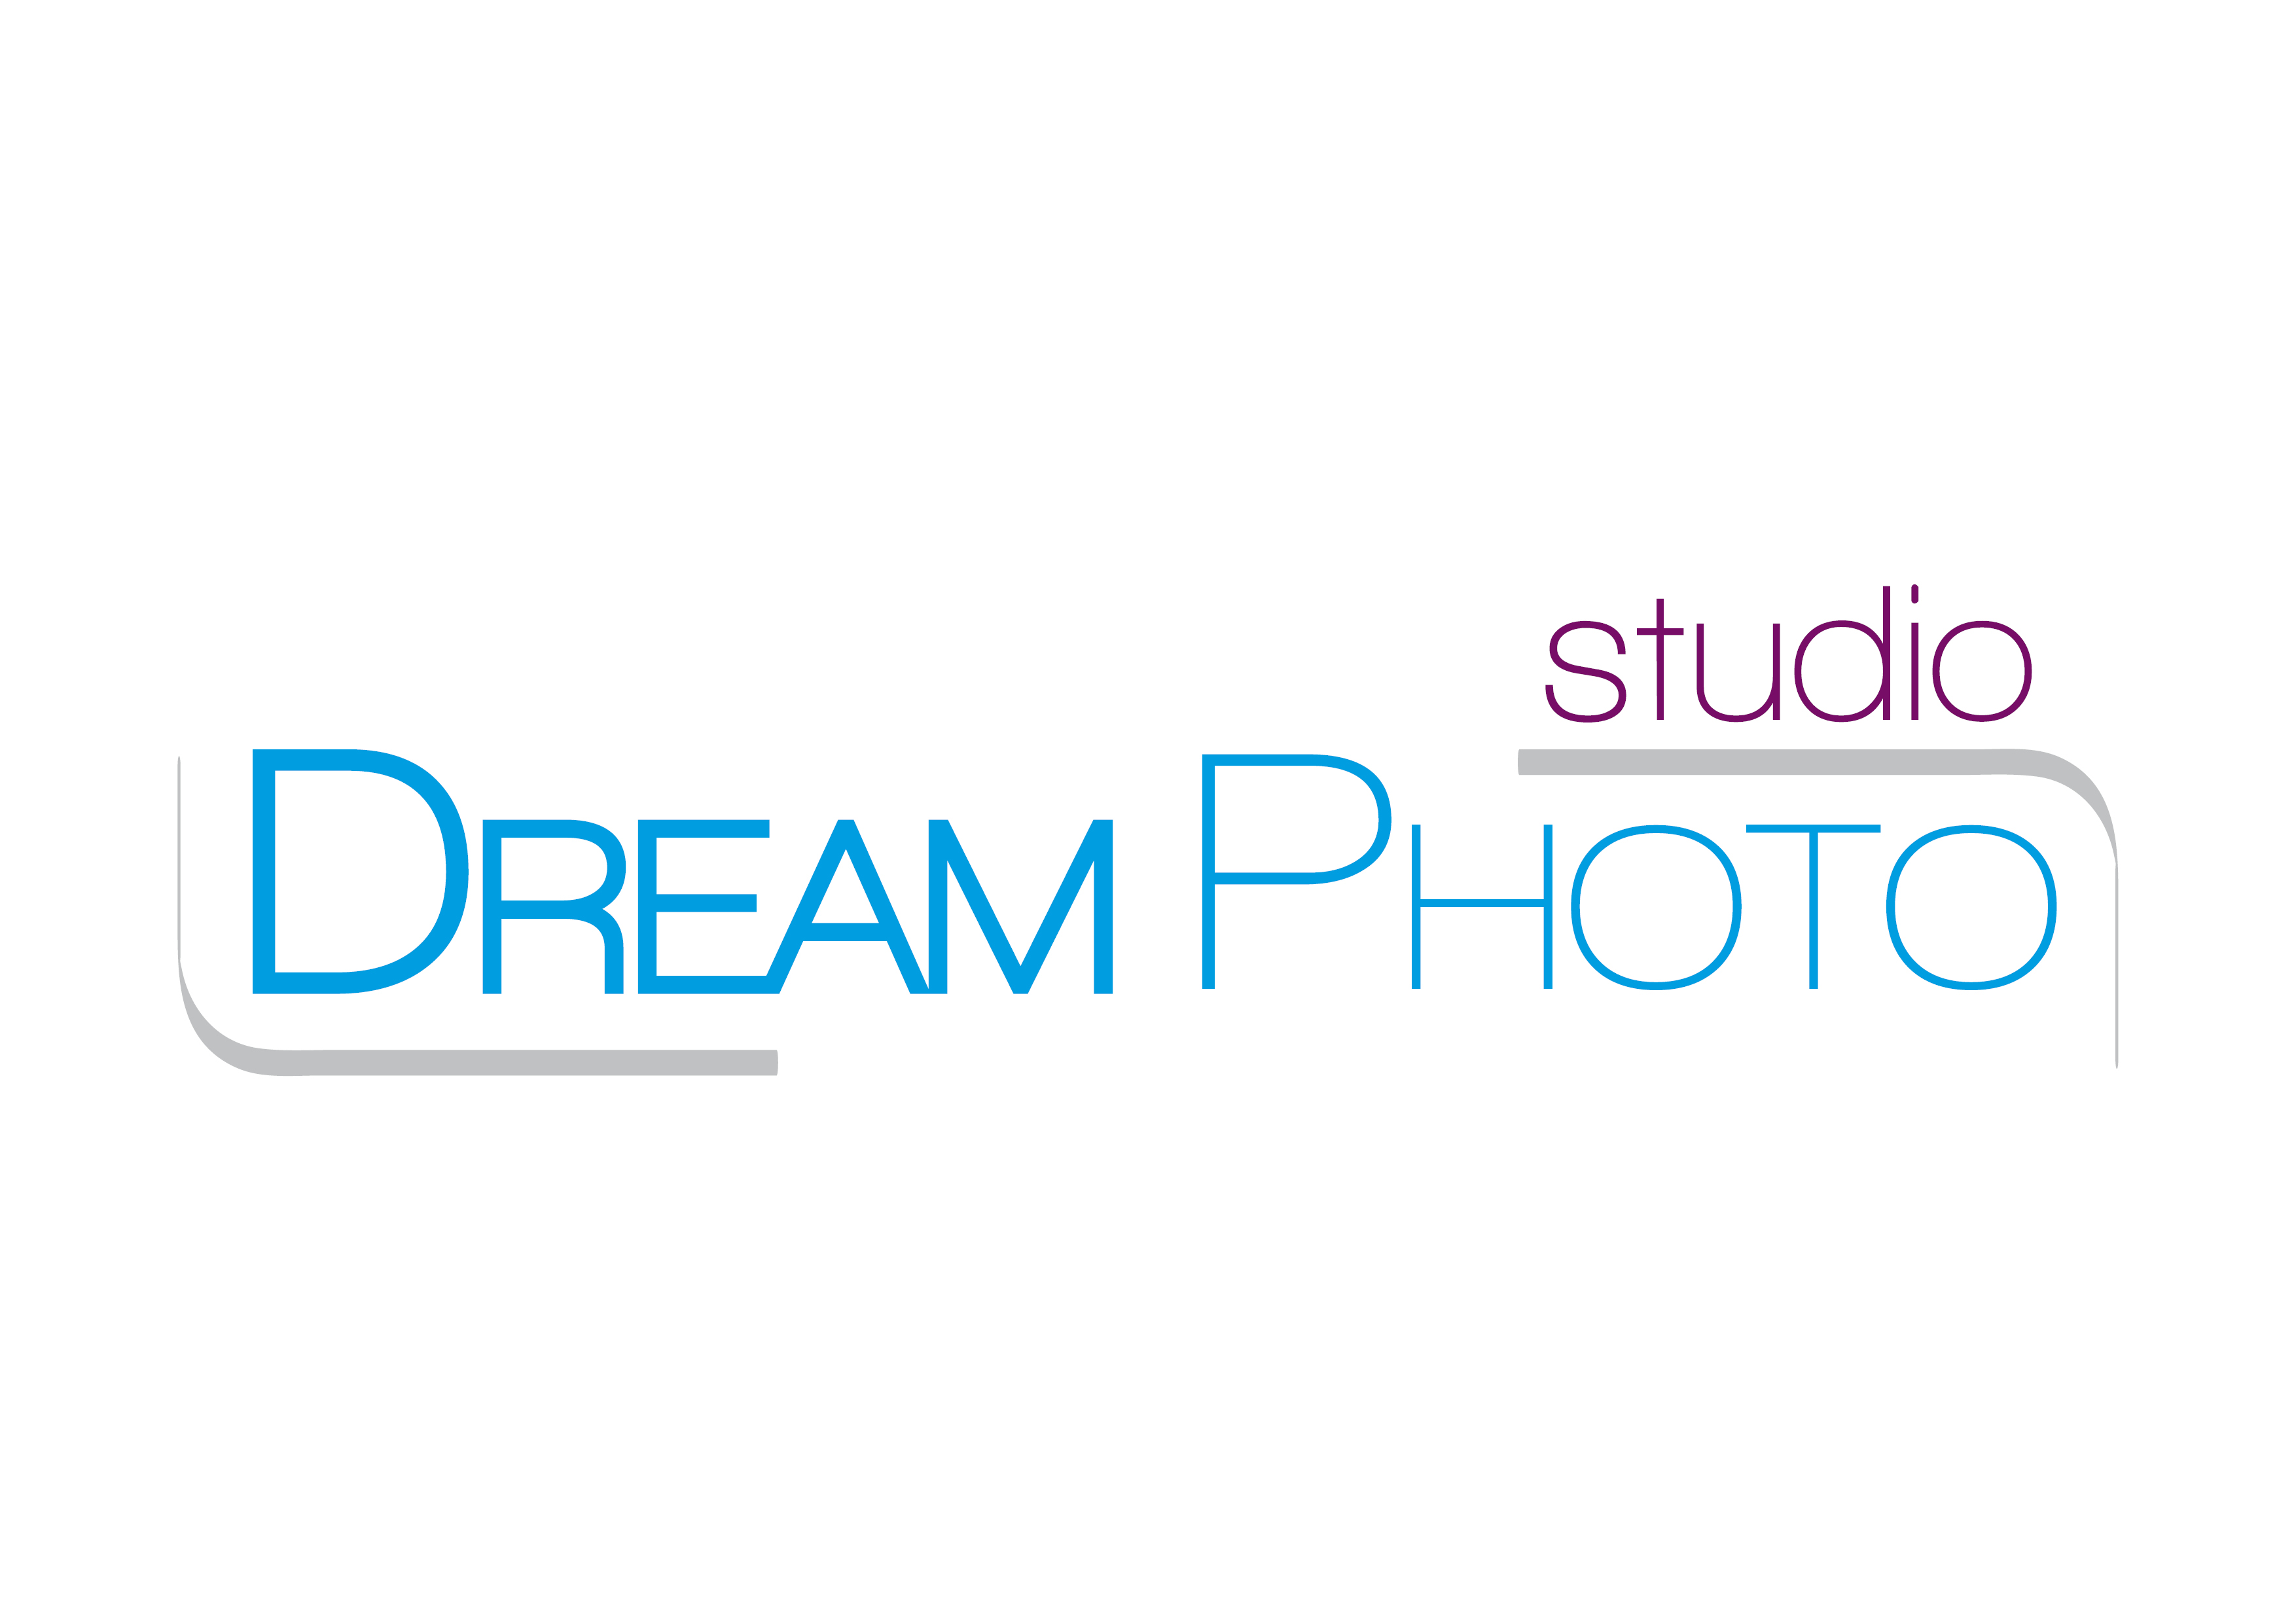 Studio Dream Photo